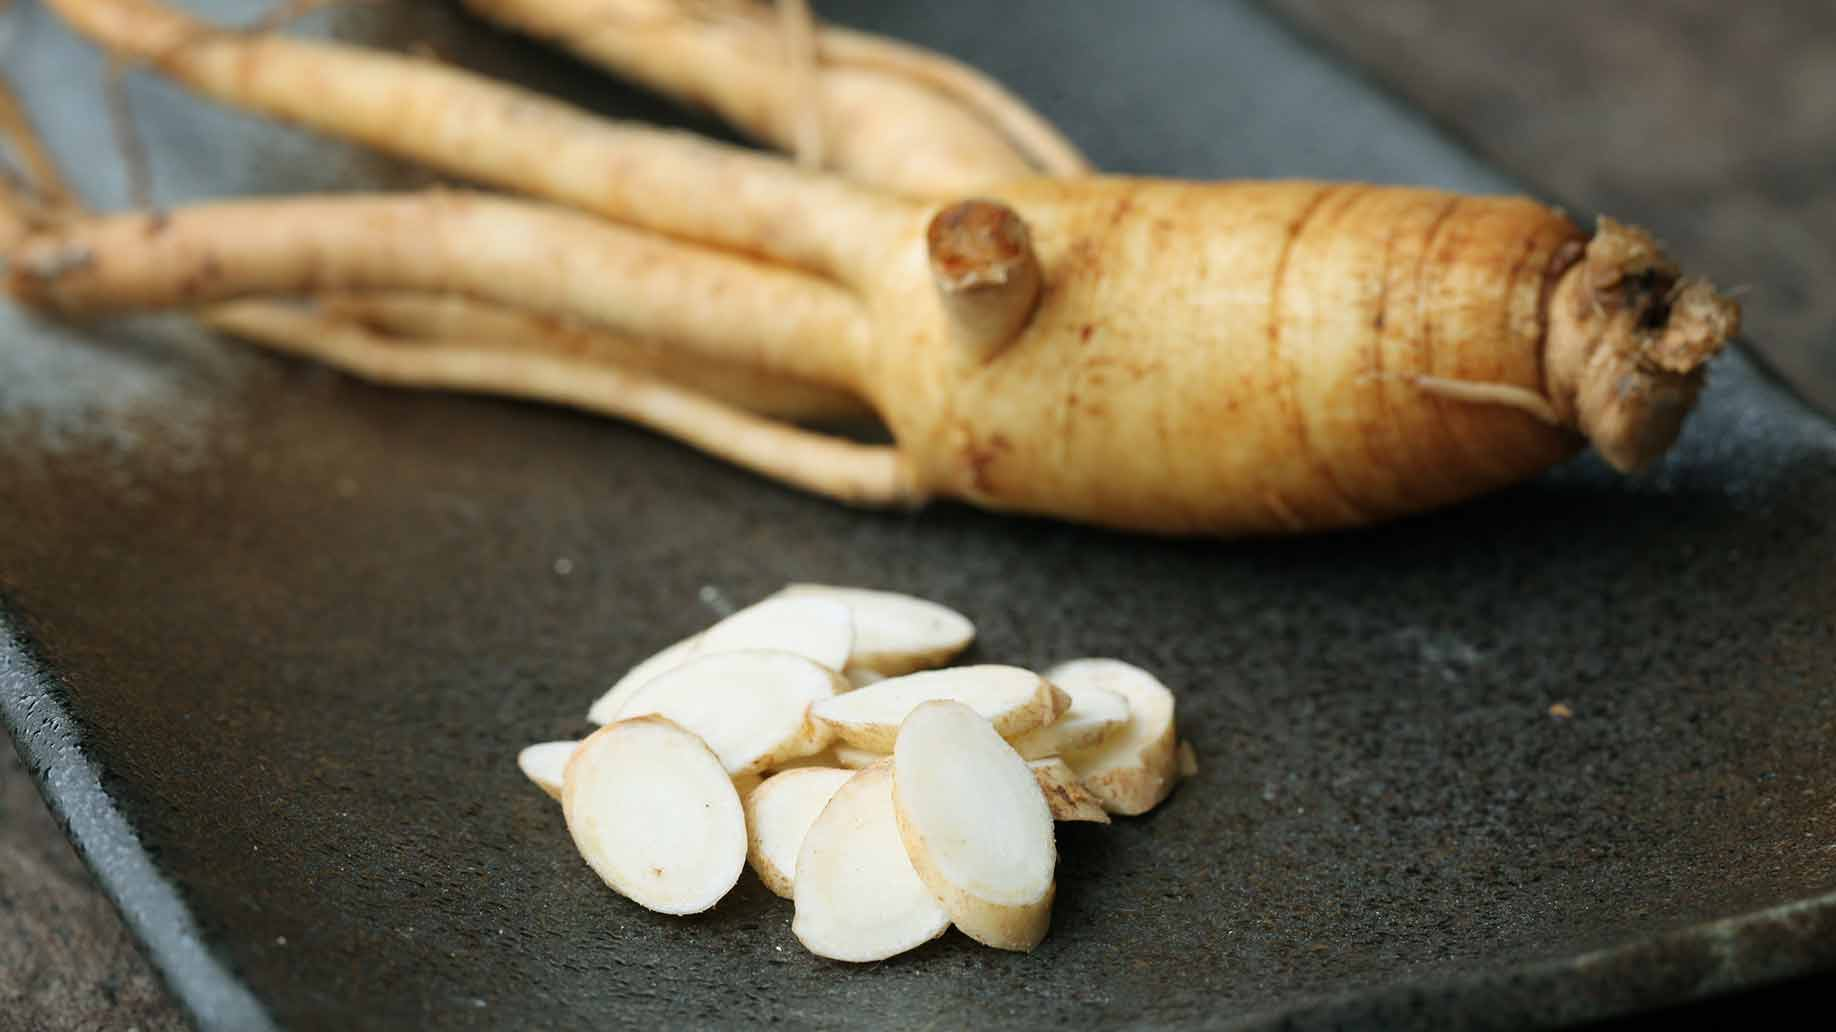 ginseng fresh root and slices